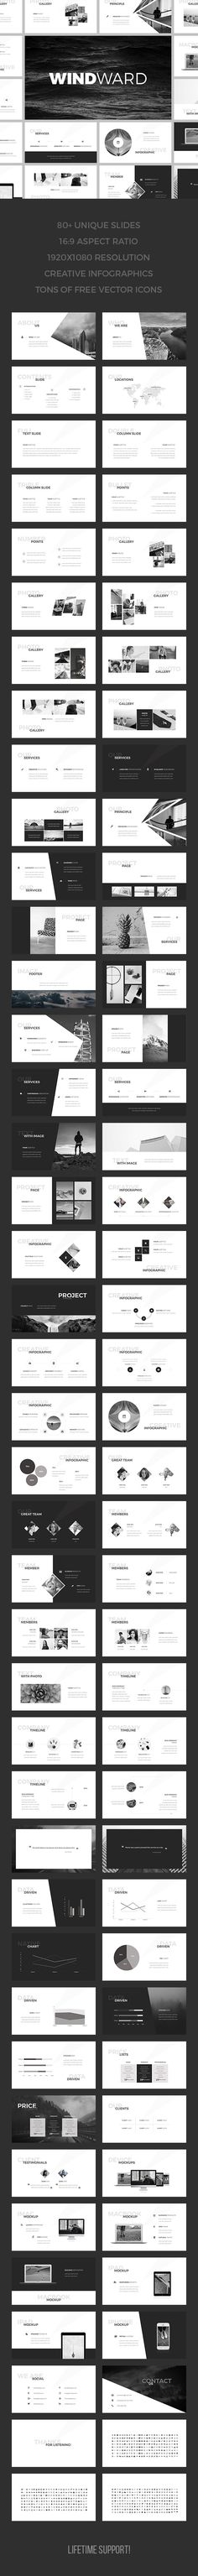 WindWard PowerPoint Template (PowerPoint Templates)